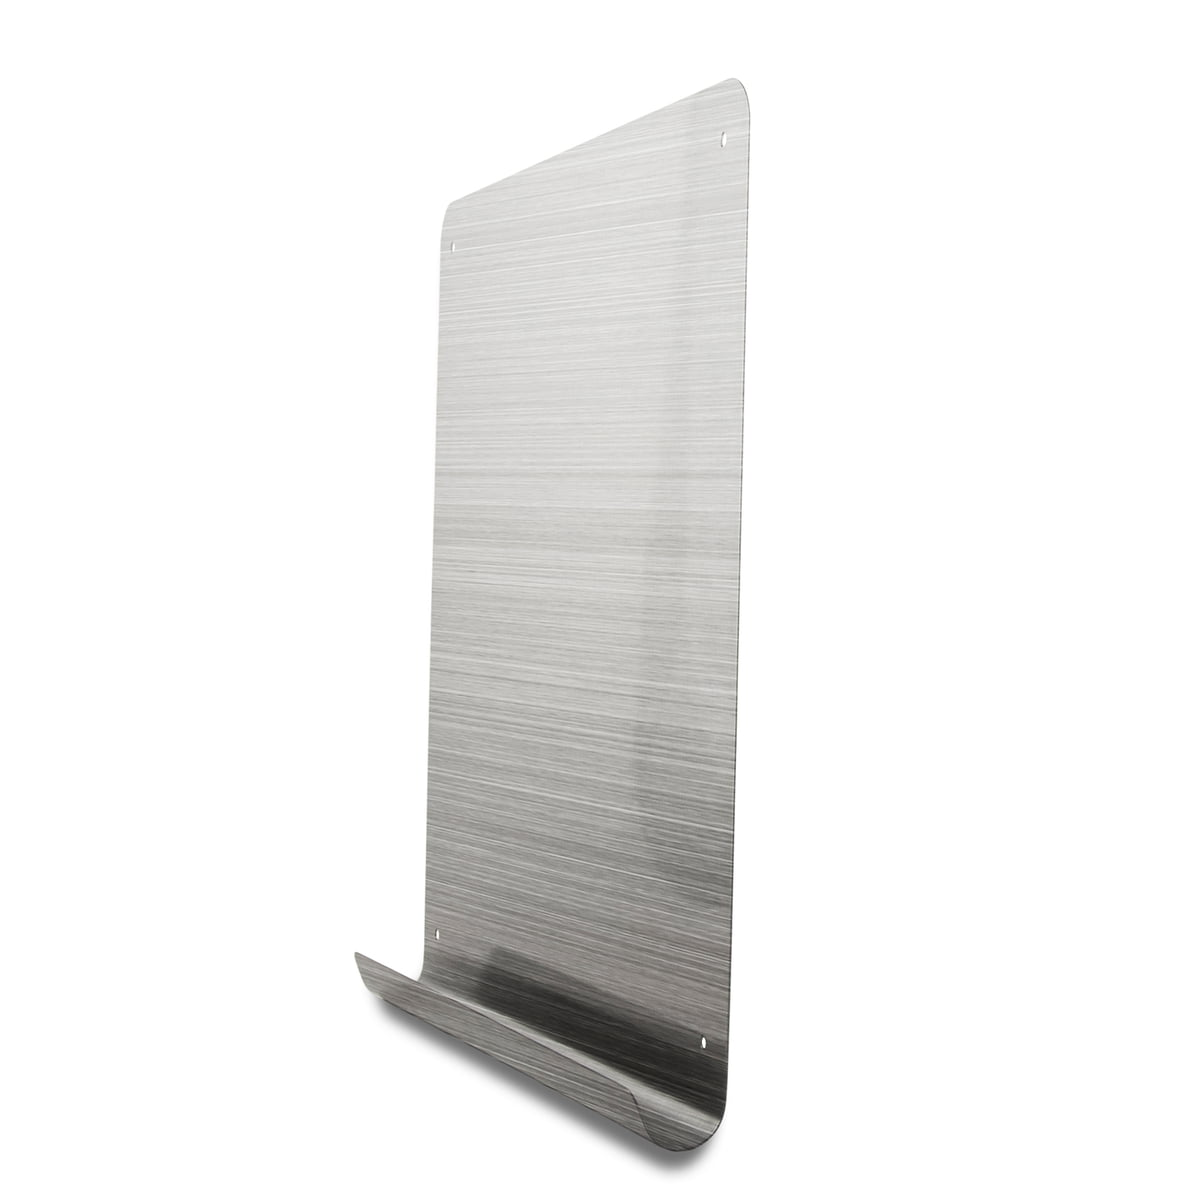 the magnetic board by threebythree - magnetic board with stainless steel shelf